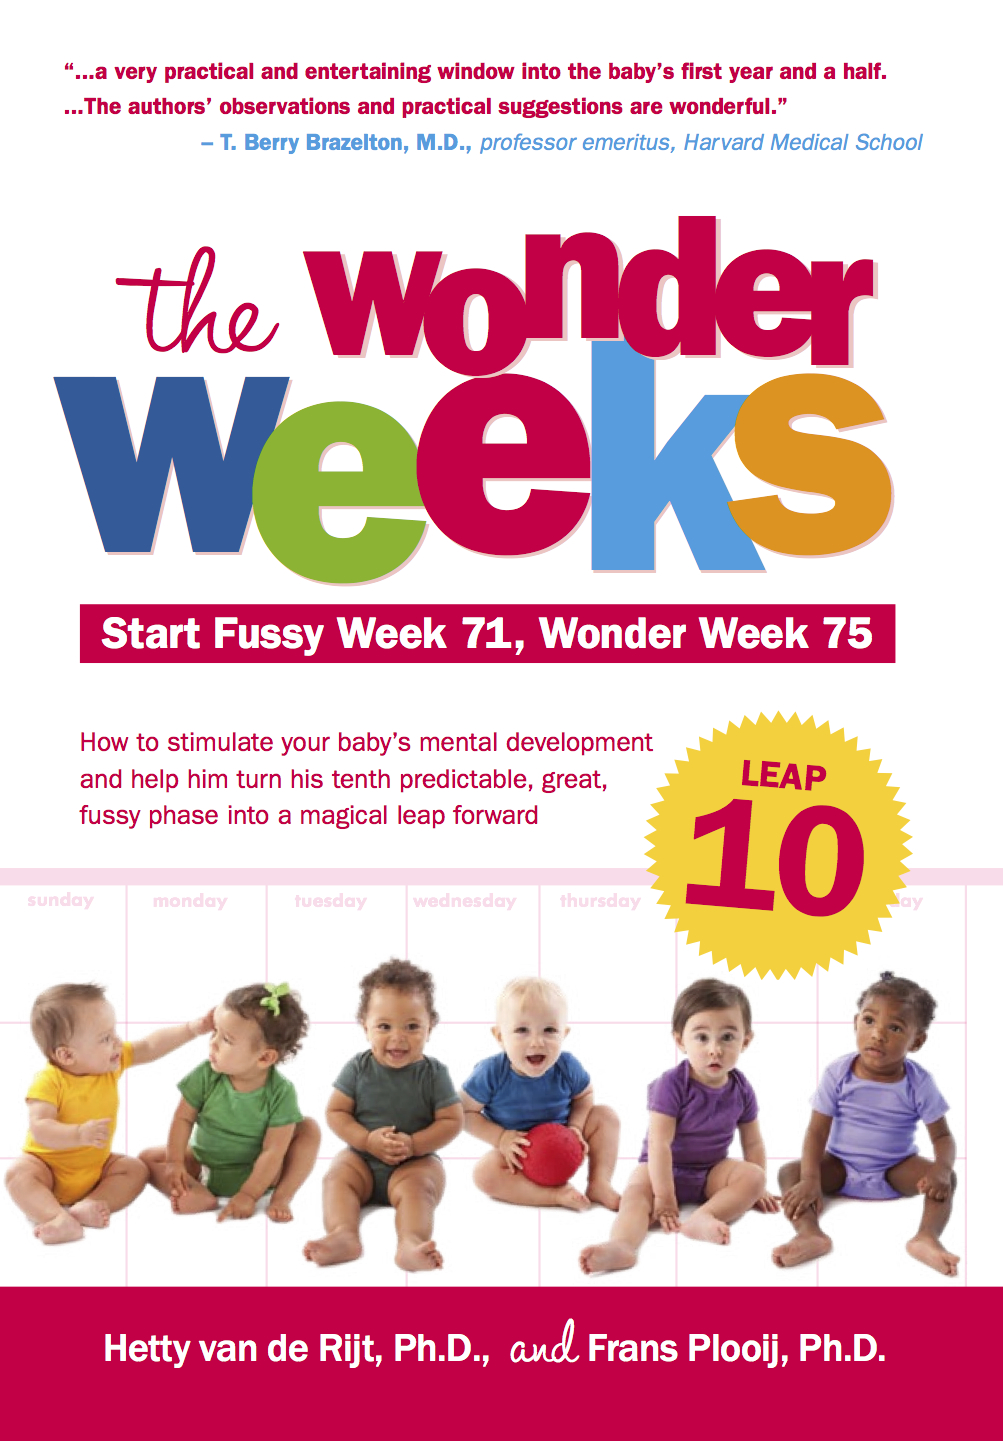 The Wonder Weeks, Leap 10